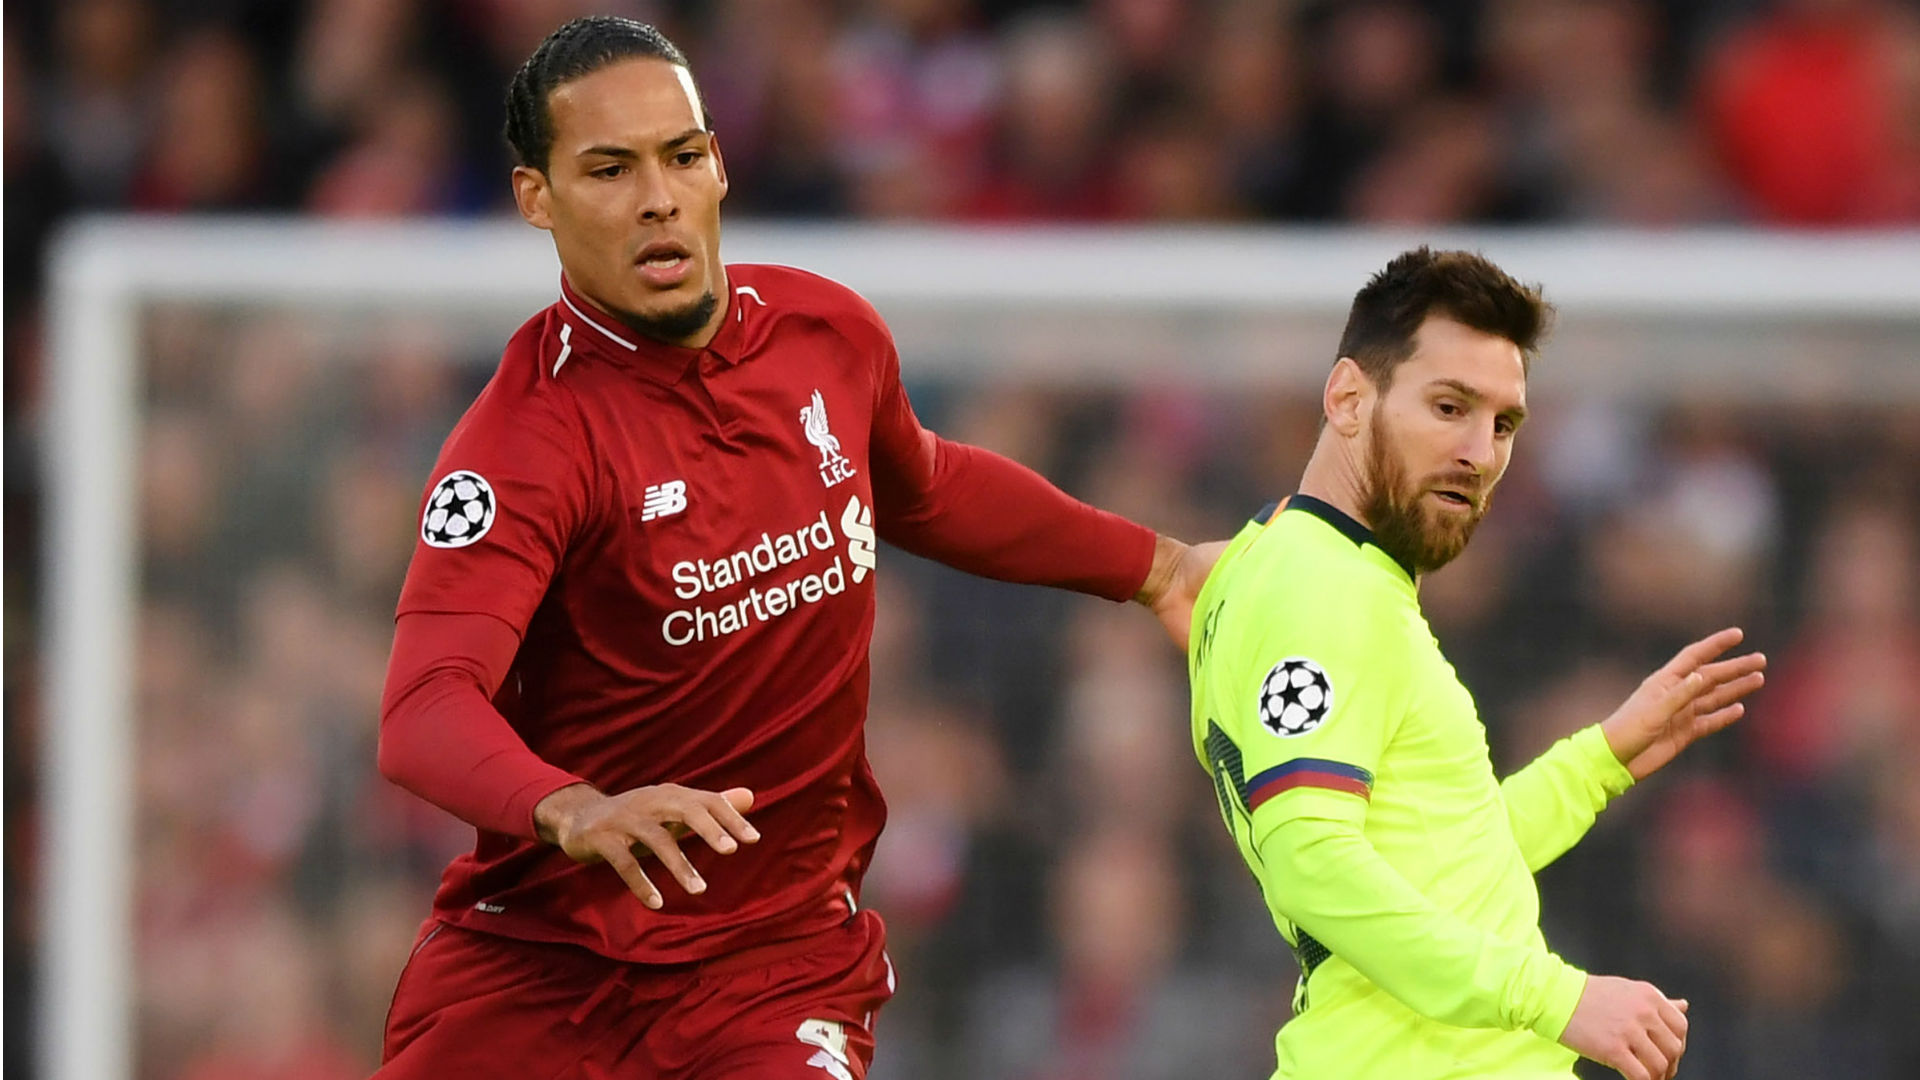 Ballon d'Or 2019: Van Dijk 'respects greatness' after losing out to Messi